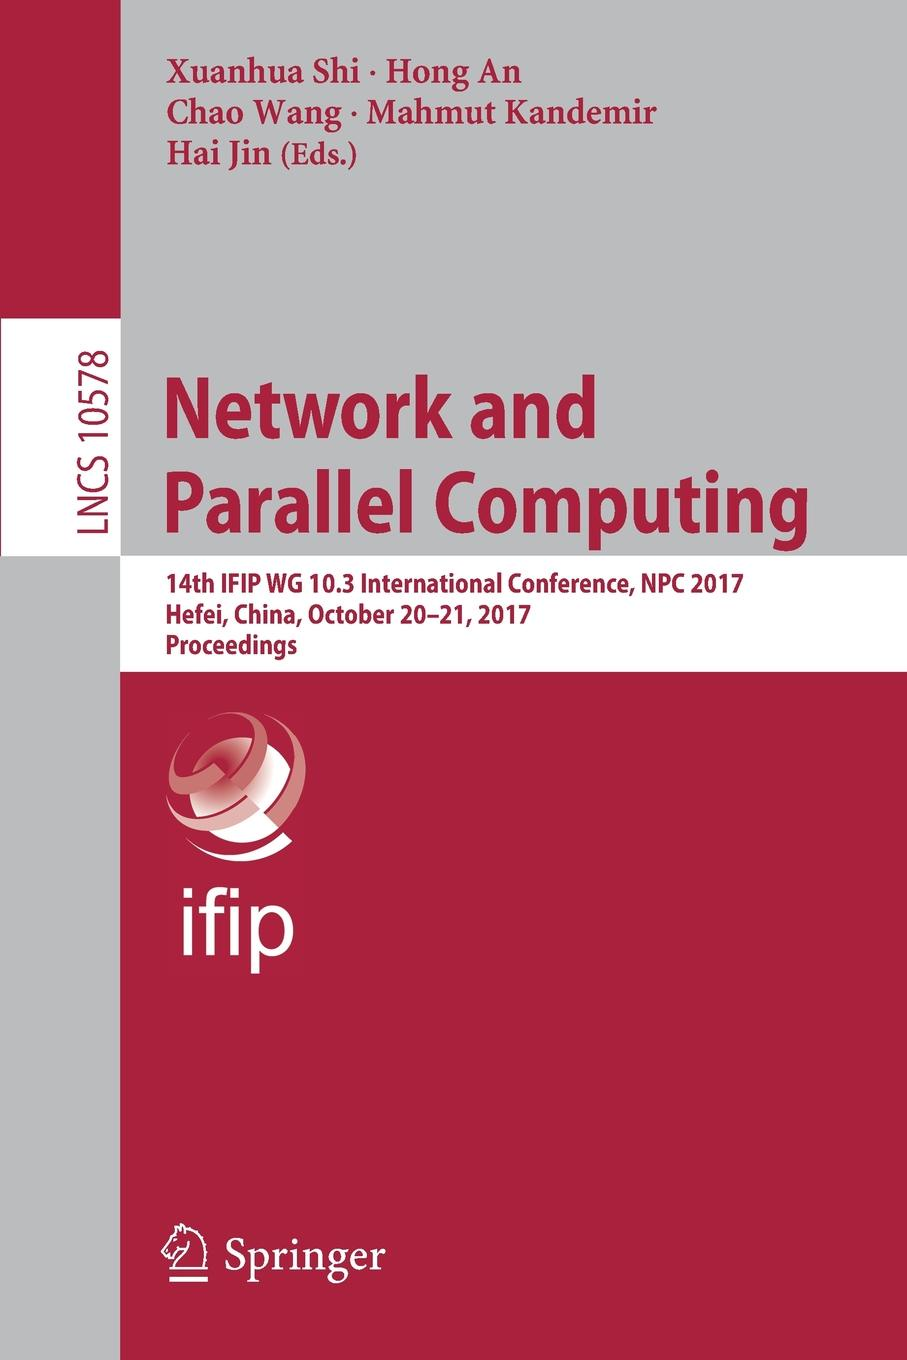 Network and Parallel Computing. 14th IFIP WG 10.3 International Conference, NPC 2017, Hefei, China, October 20-21, 2017, Proceedings hefei dayu fitness db182